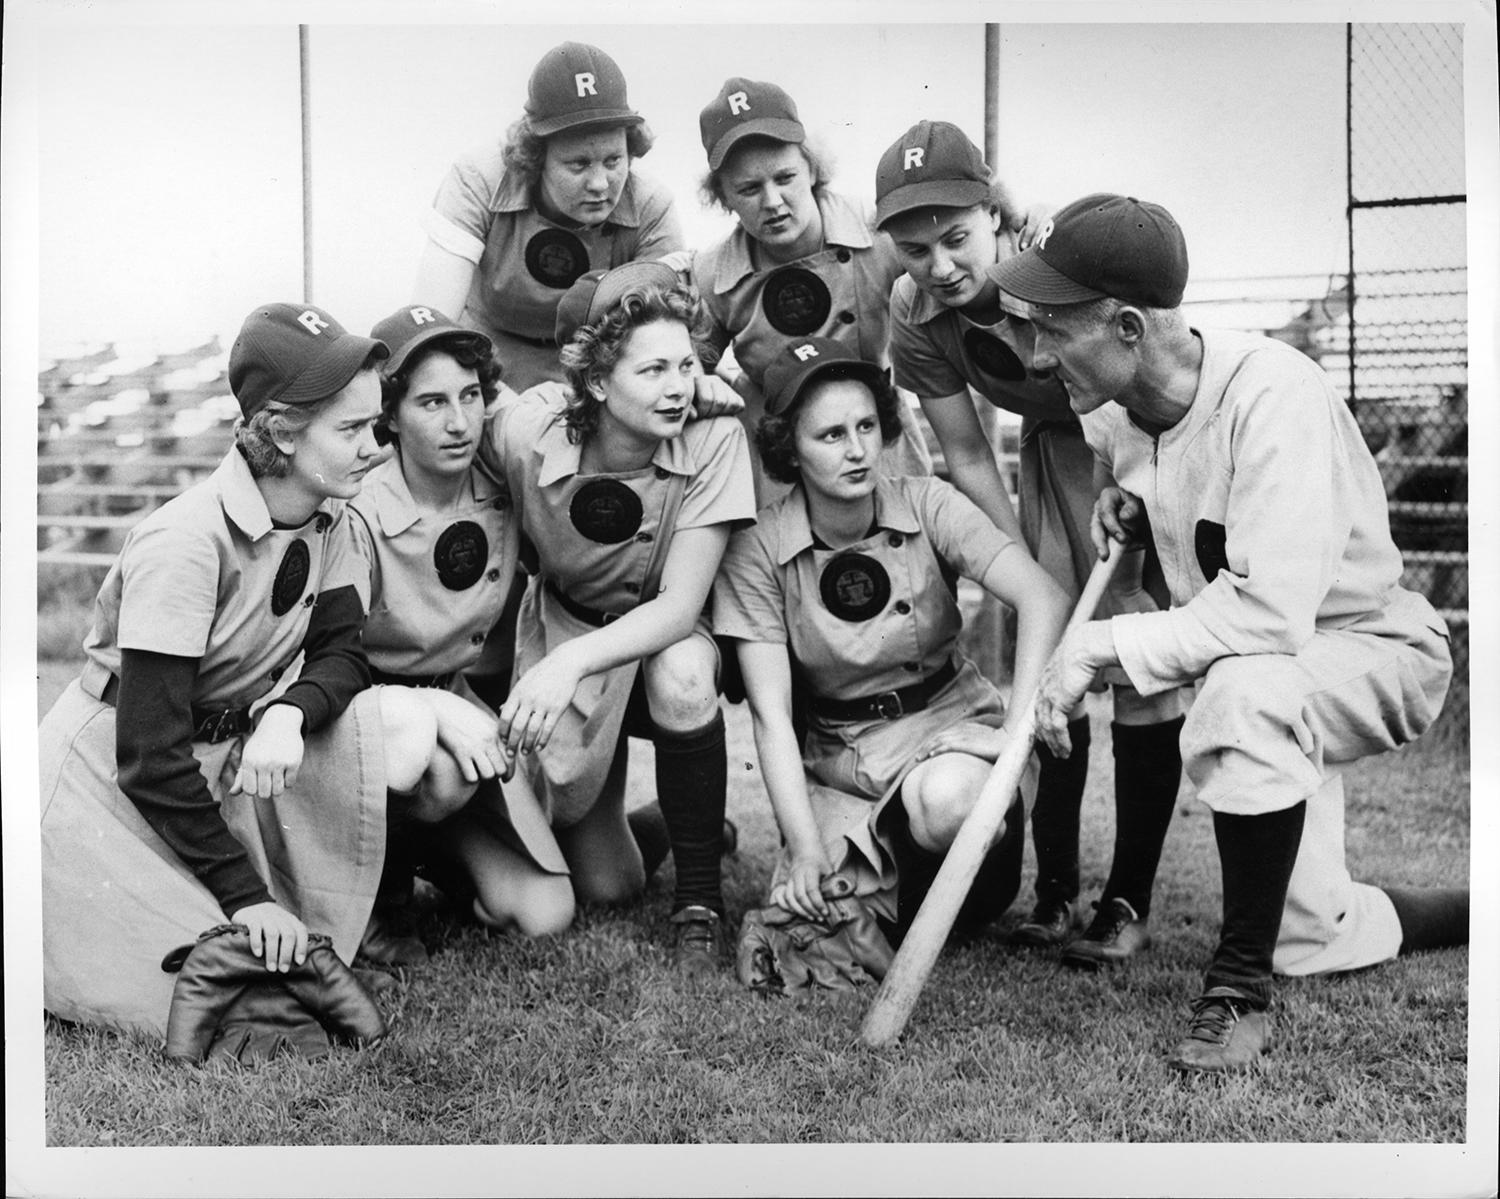 """The Rockford Peaches were one of the most famous AAGPBL teams, but in a skit entitled """"Their Own League,"""" SNL cast members Aidy Bryant, Kate McKinnon, Cecily Strong, Vanessa Bayer, Bobby Moynihan and Taran Killam offered an alternate version of the 1992 Columbia Pictures film <em>A League of Their Own</em>. (National Baseball Hall of Fame)"""